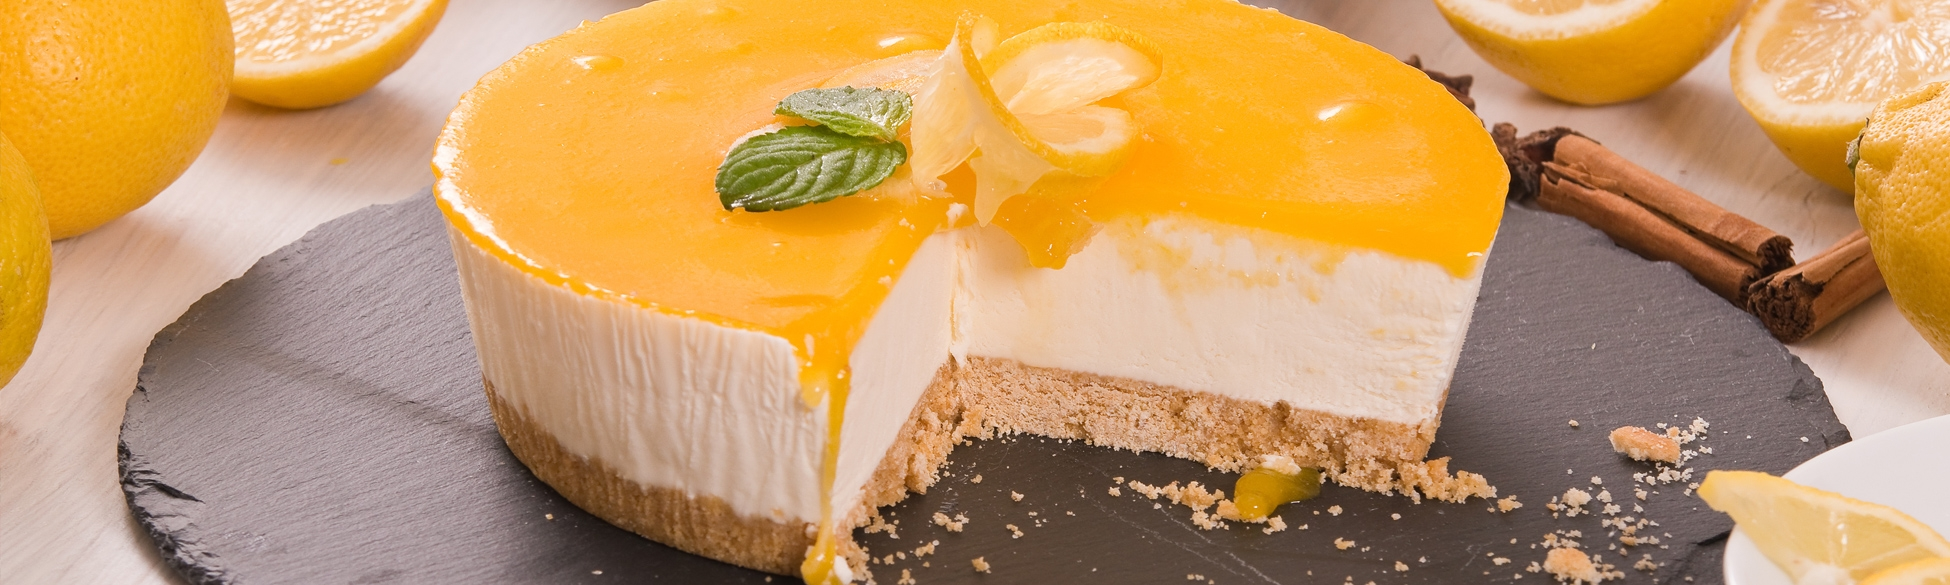 Sweet recipes: cheesecake and lemon curd